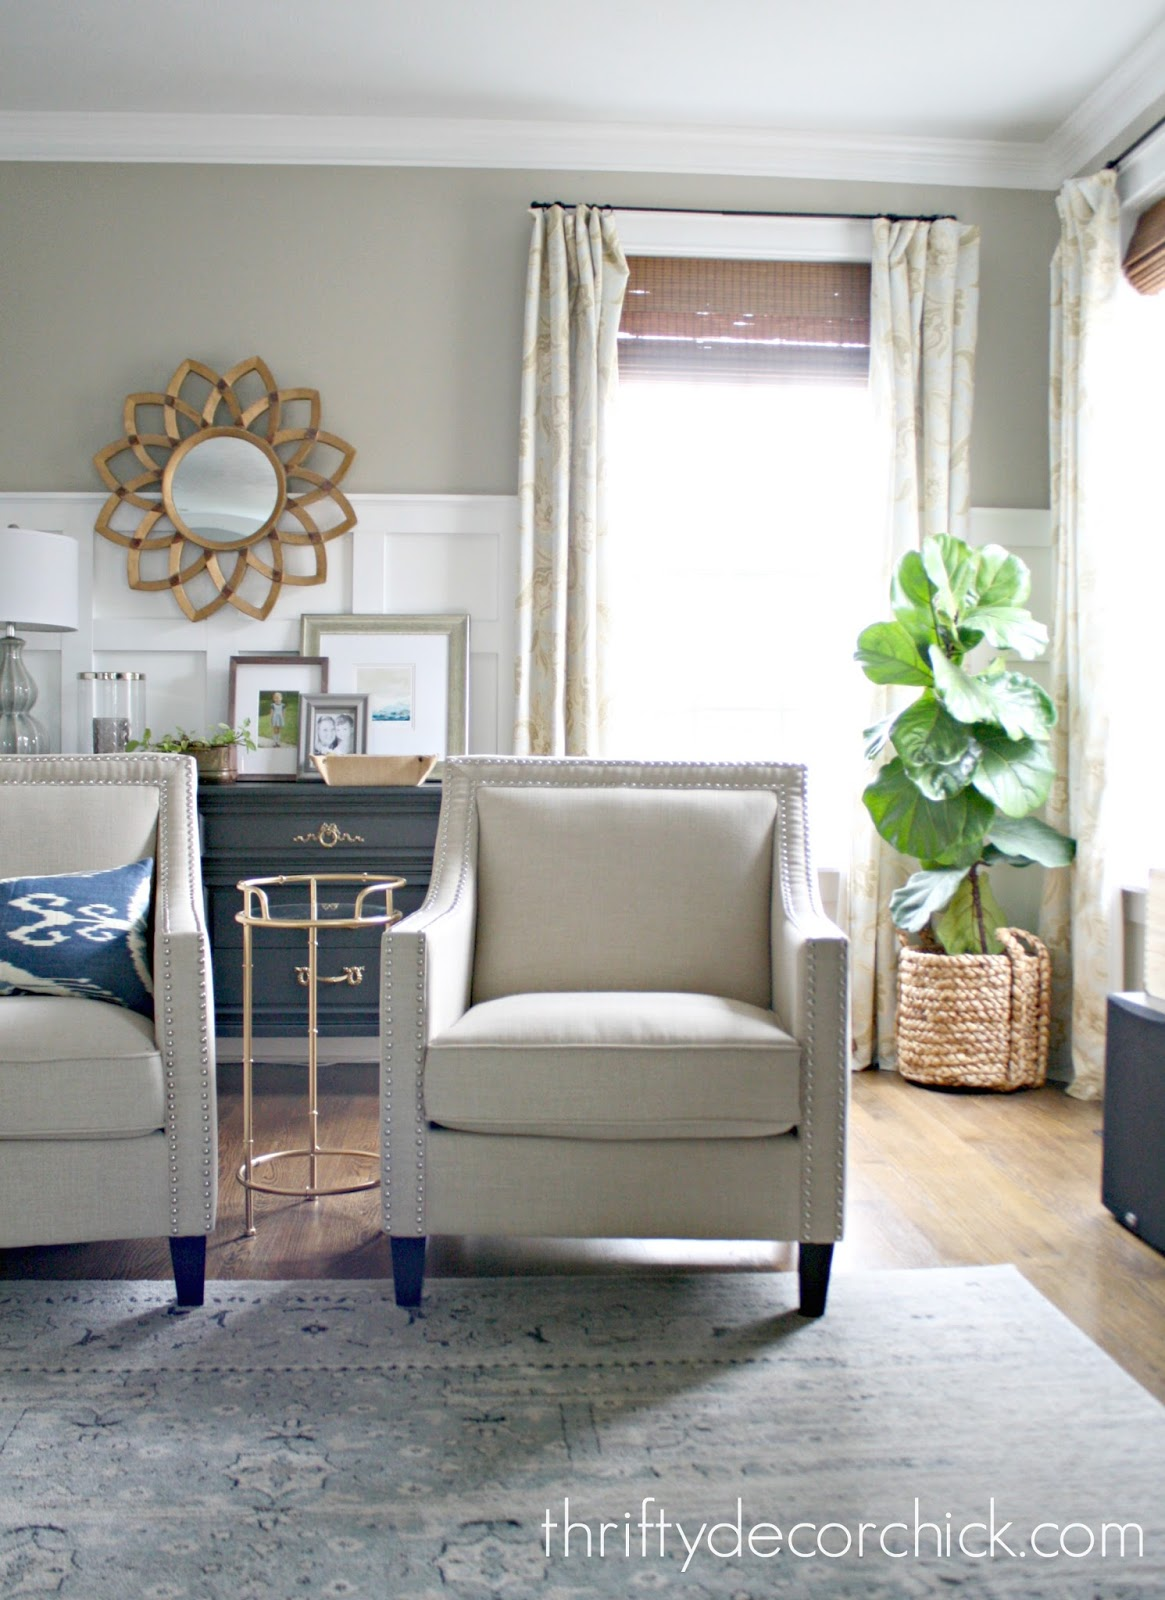 Affordable neutral arm chairs